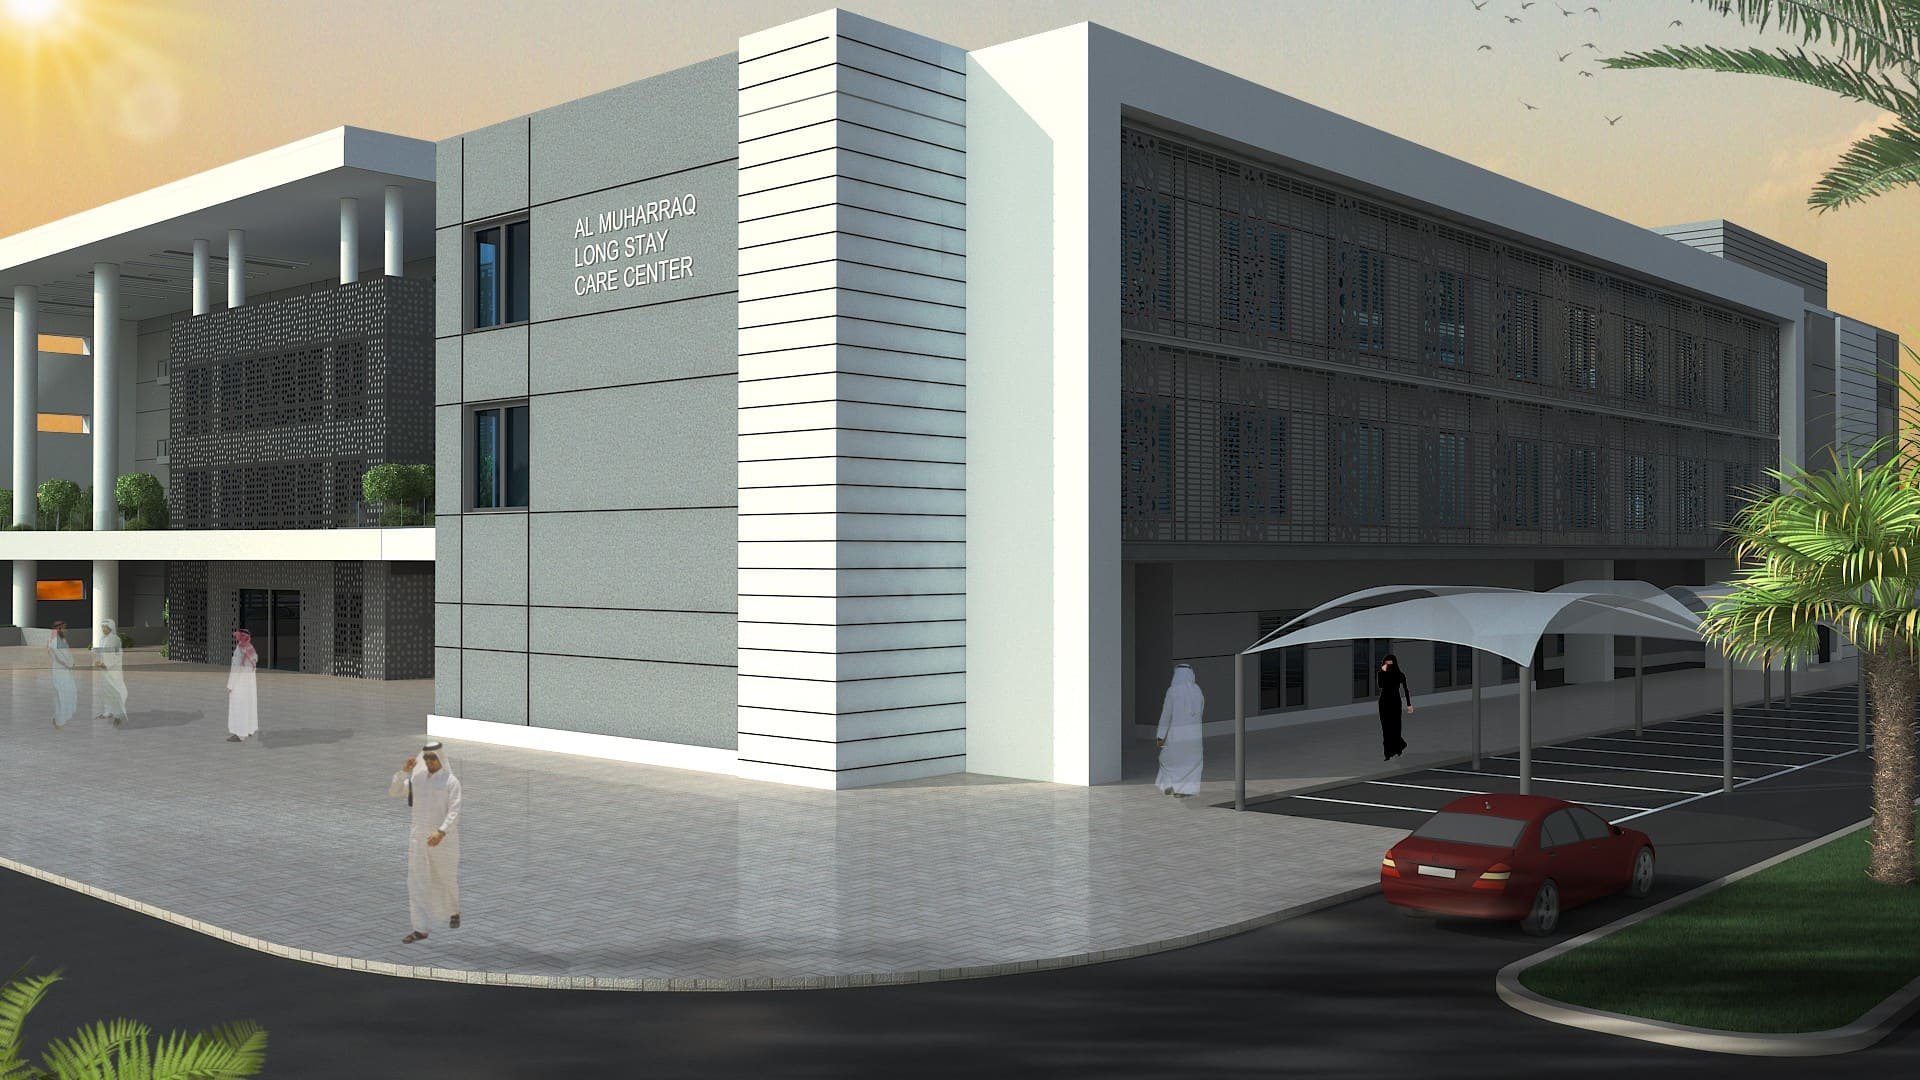 Muharraq Long-Stay Care Center Project